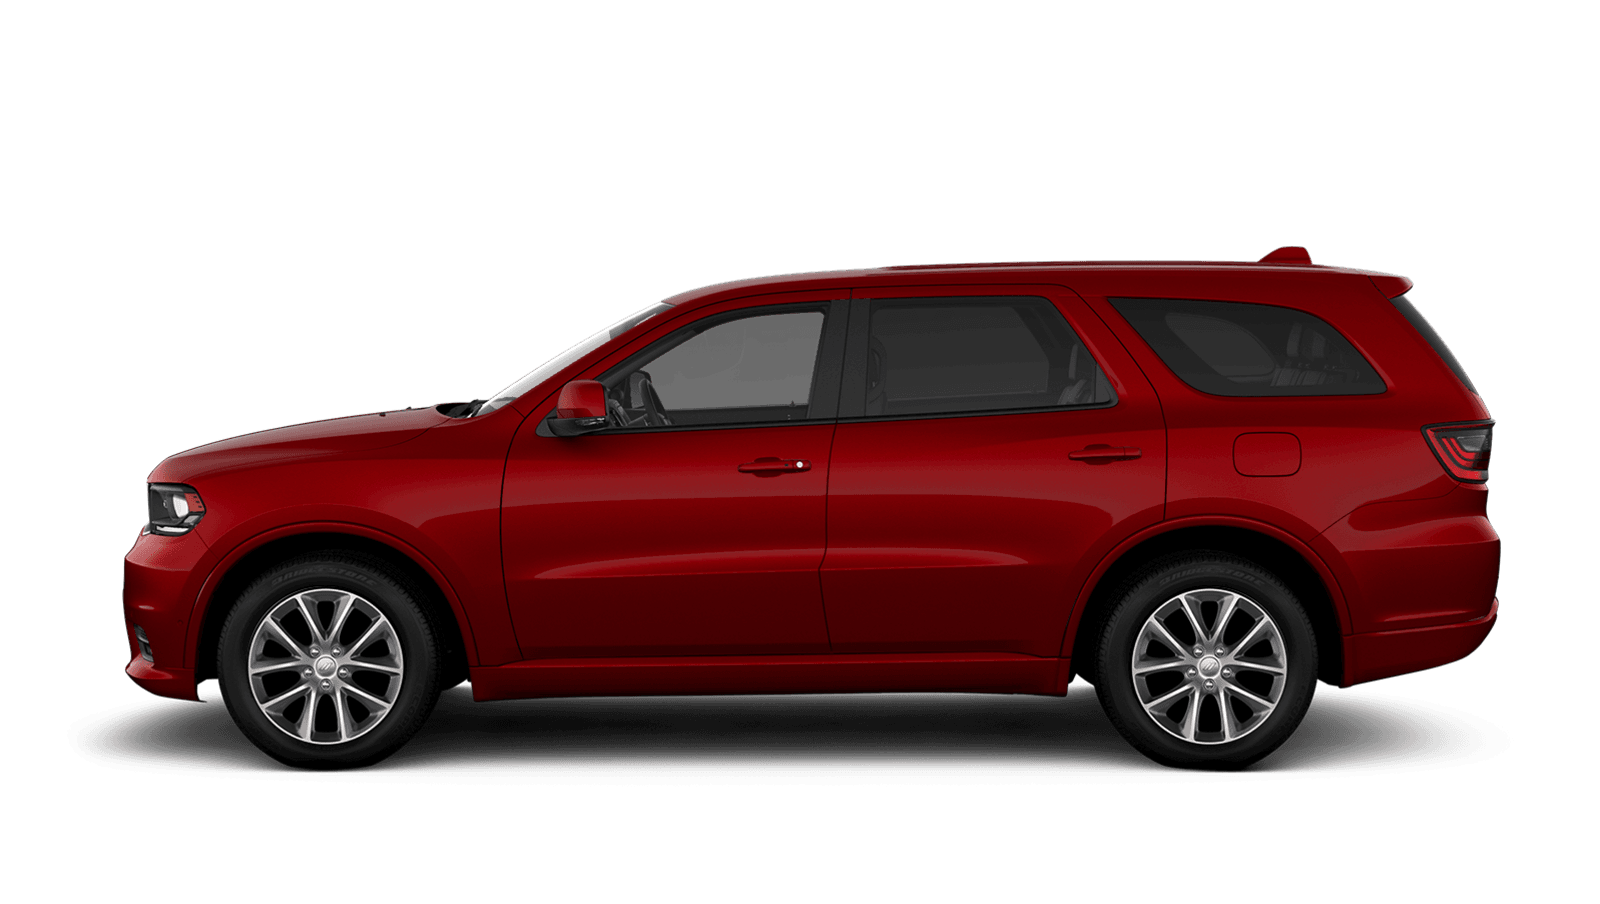 2019 Dodge Durango sideview with 20-inch satin carbon aluminum wheels